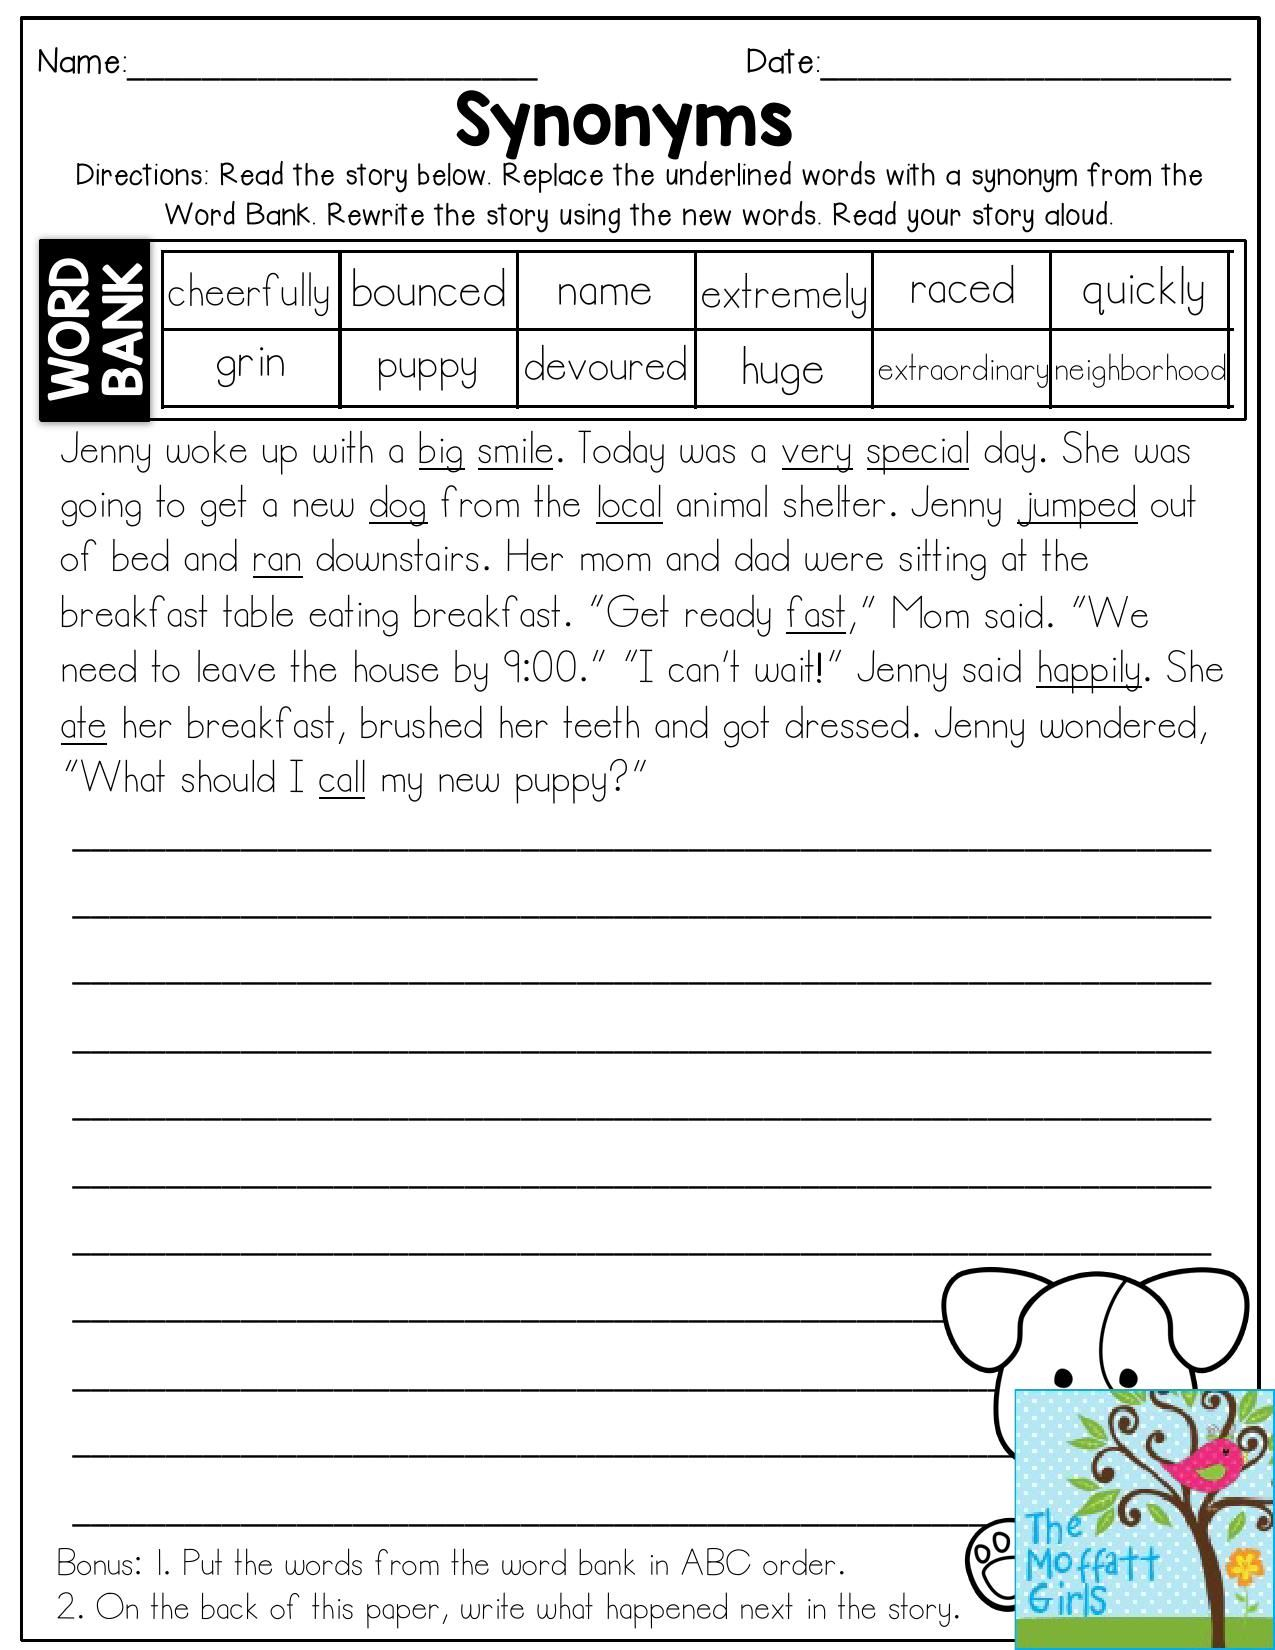 hight resolution of Synonyms- Read the story and replace the underlined words with synonyms.  Then rewrite the story. This a…   Teaching synonyms